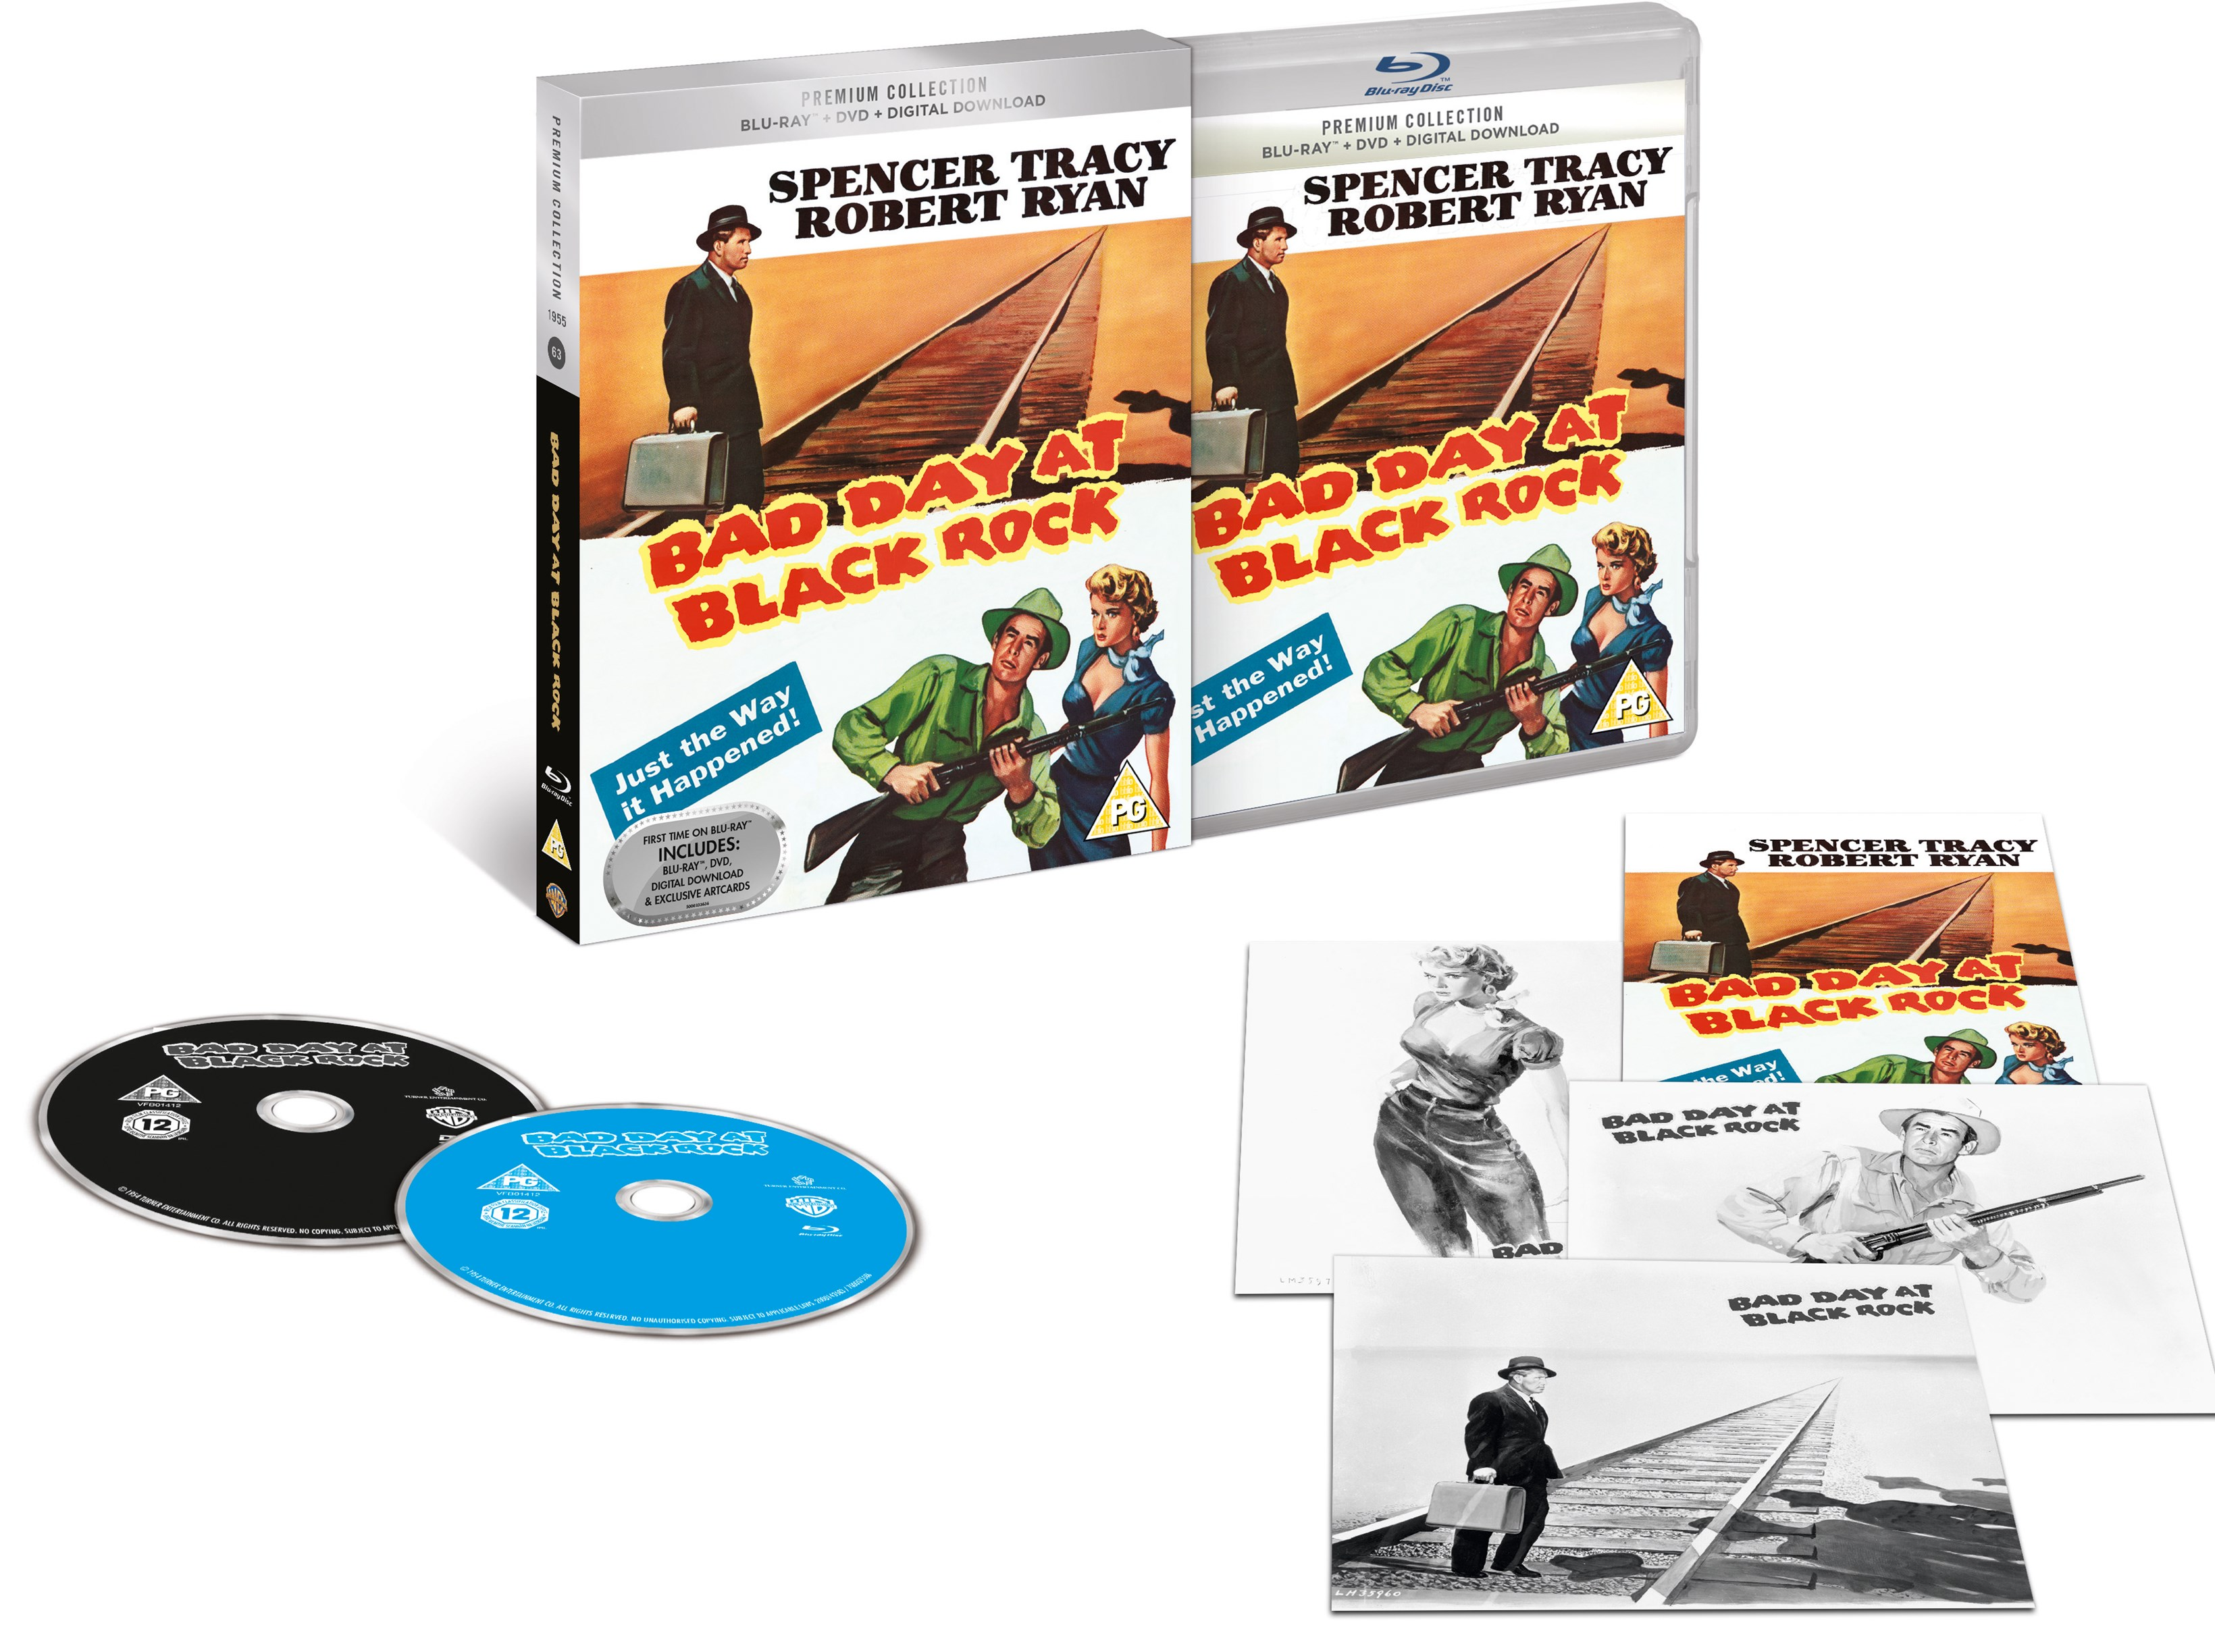 Bad Day at Black Rock (hmv Exclusive) - The Premium Collection - 3